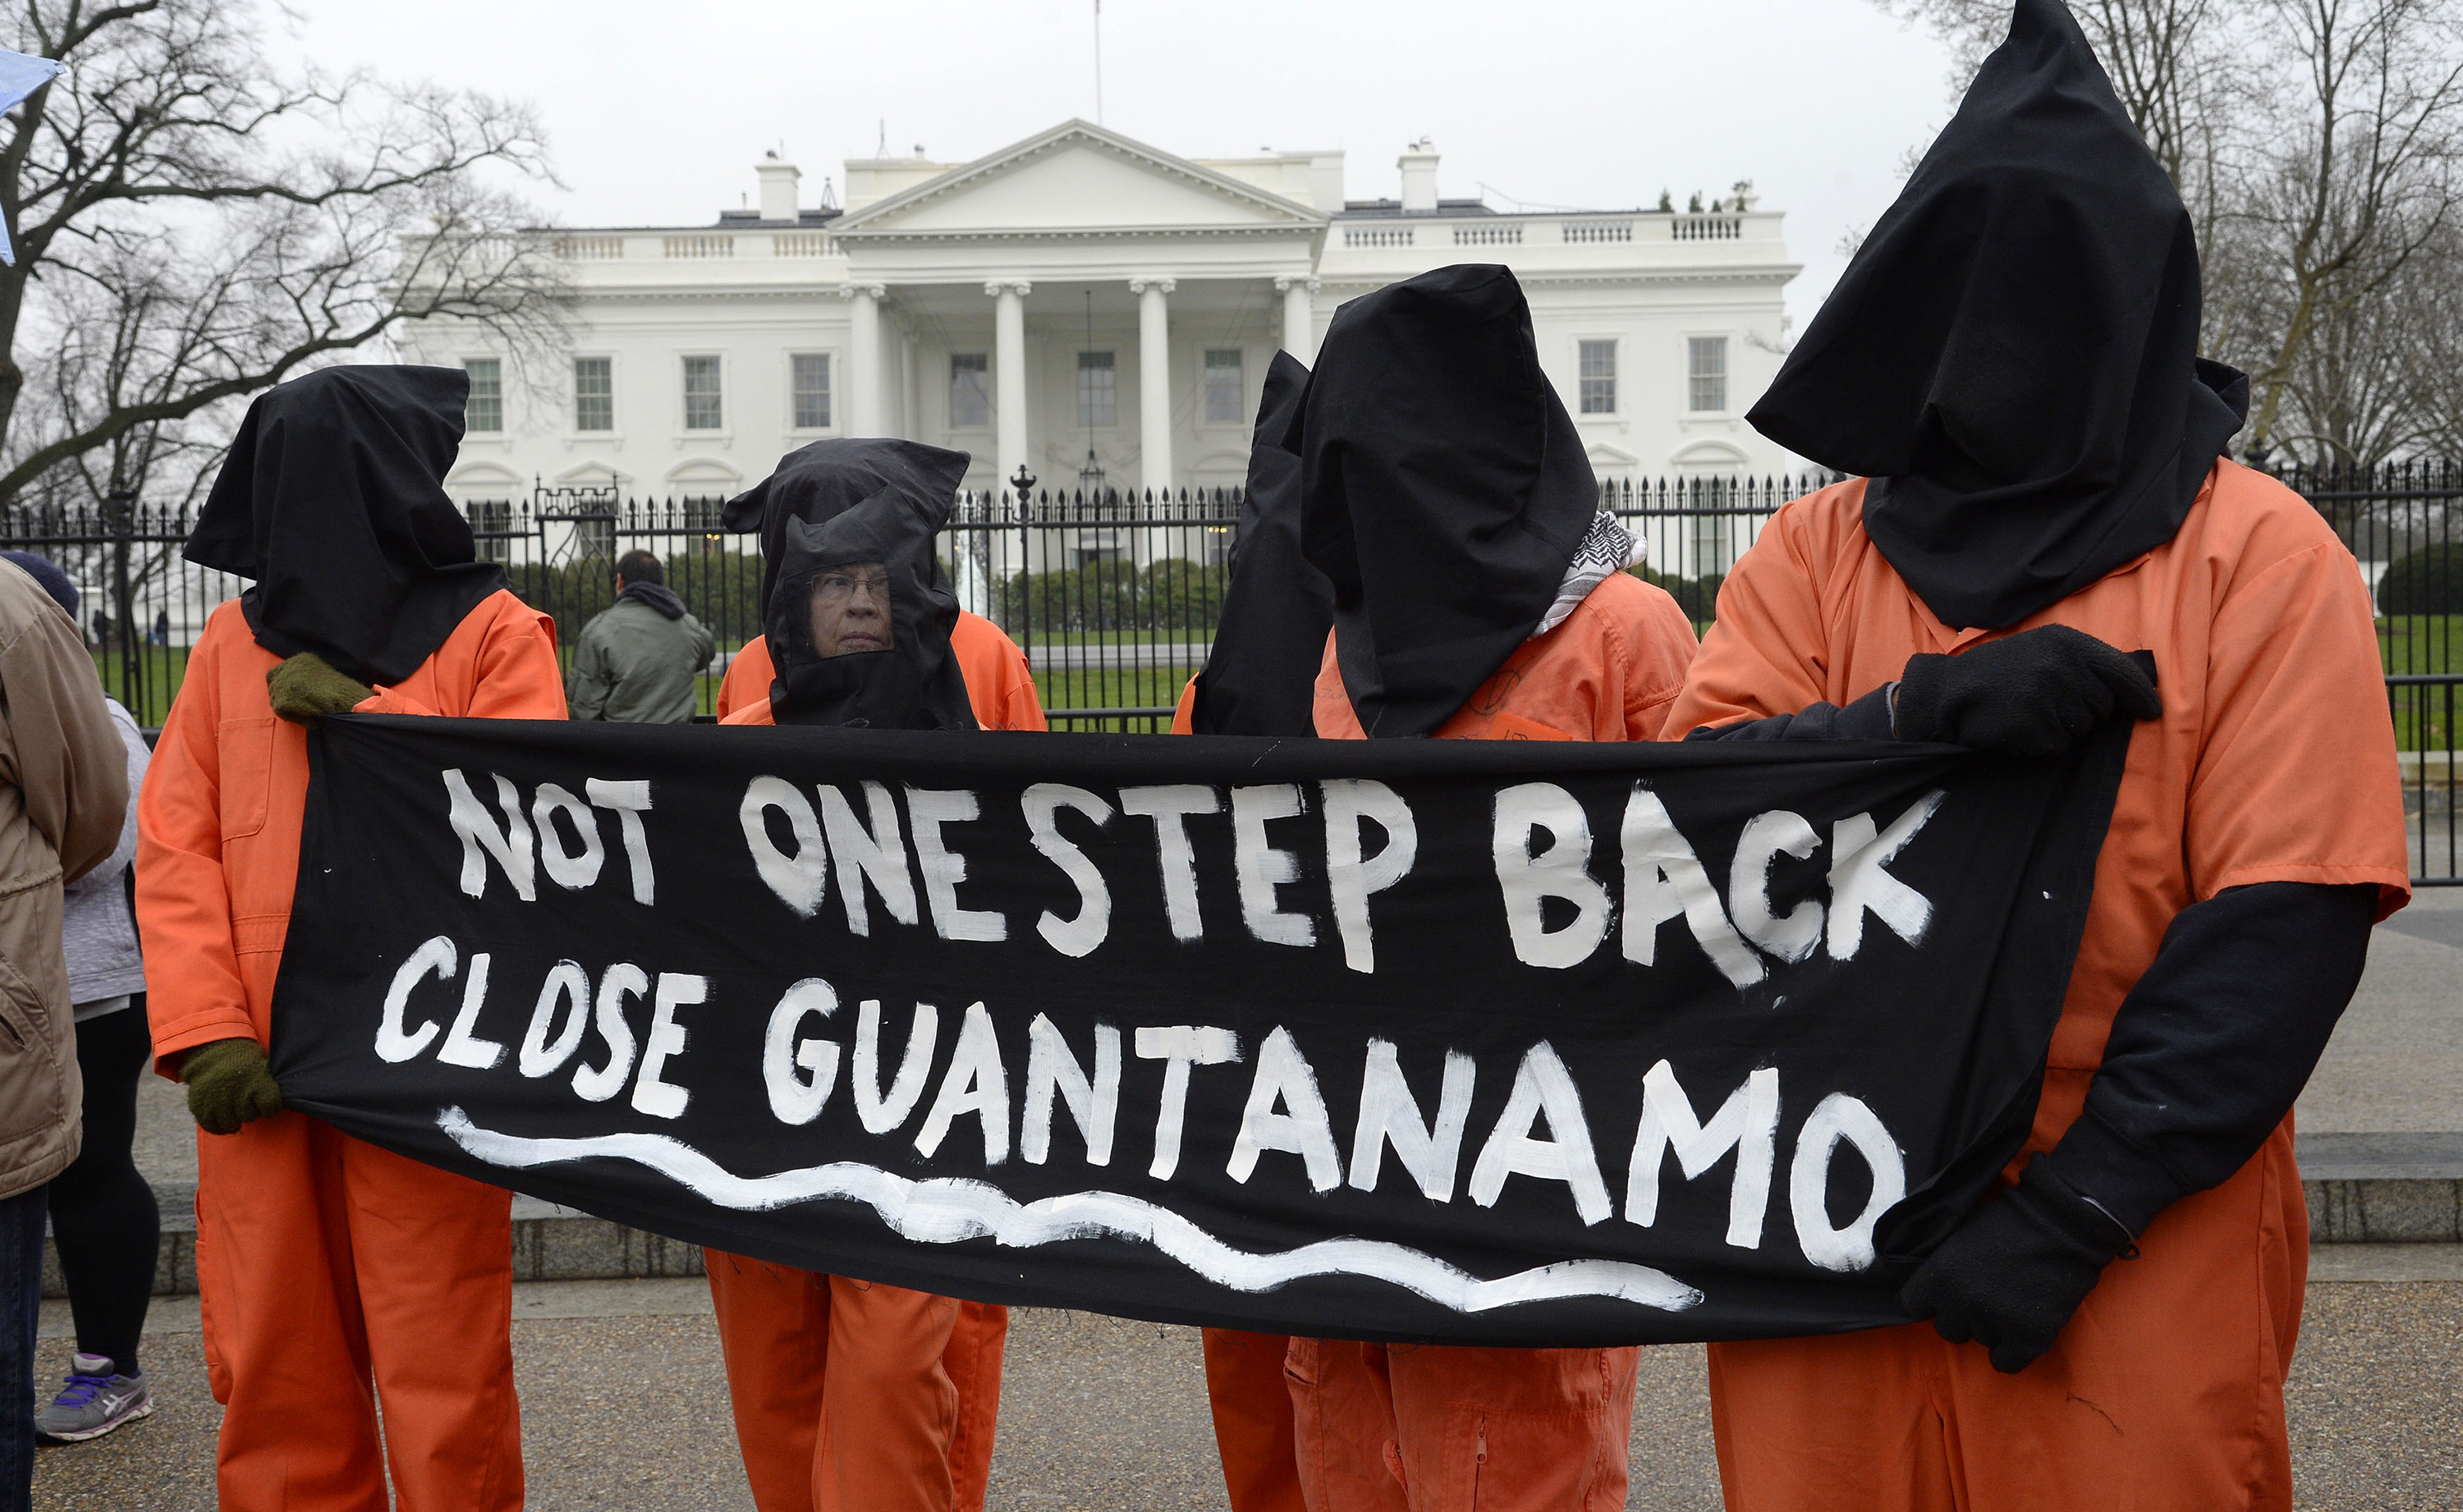 analysis of guantanamo bay How us torture left a legacy of damaged minds  who fears going outside because he sees faces in crowds as guantánamo bay guards i'm not normal anymore  the guantanamo docket.